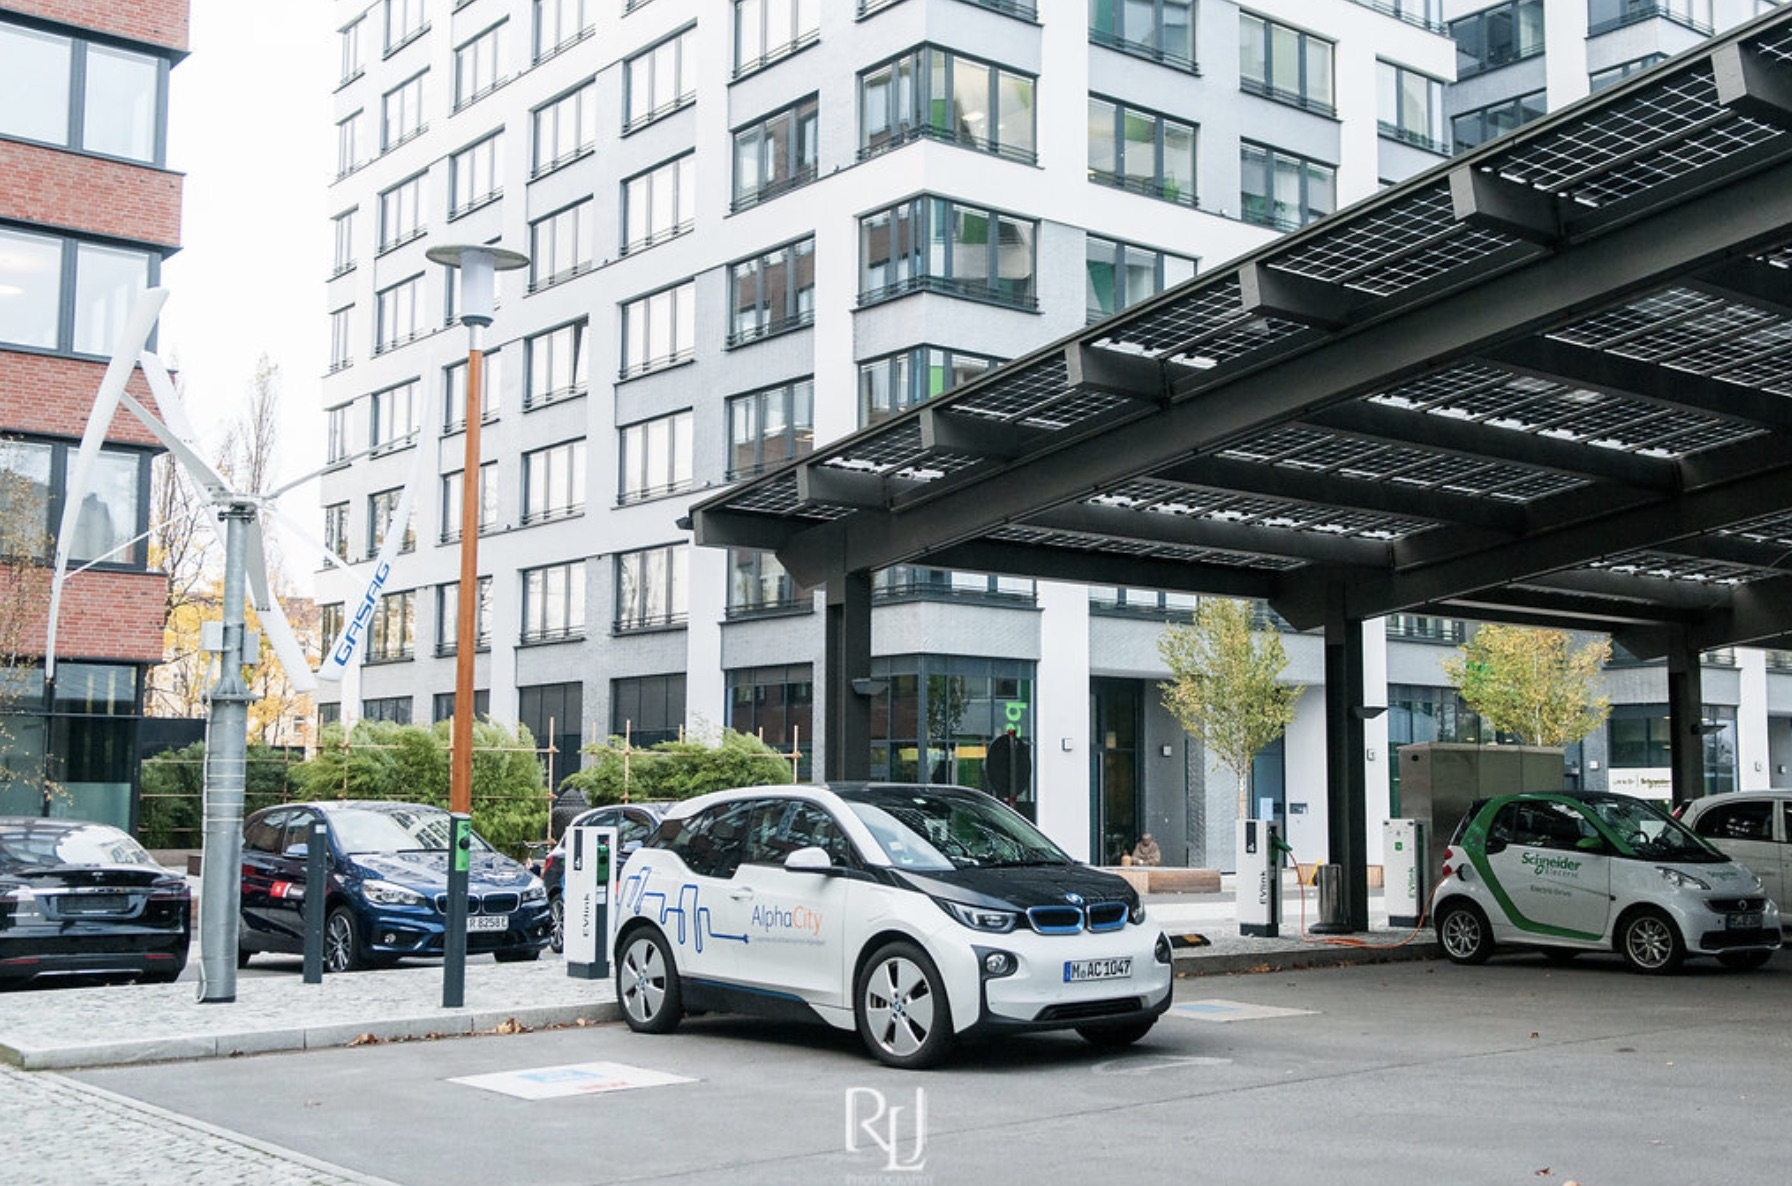 Germany encourages electric cars as part of its Parksmart strategy